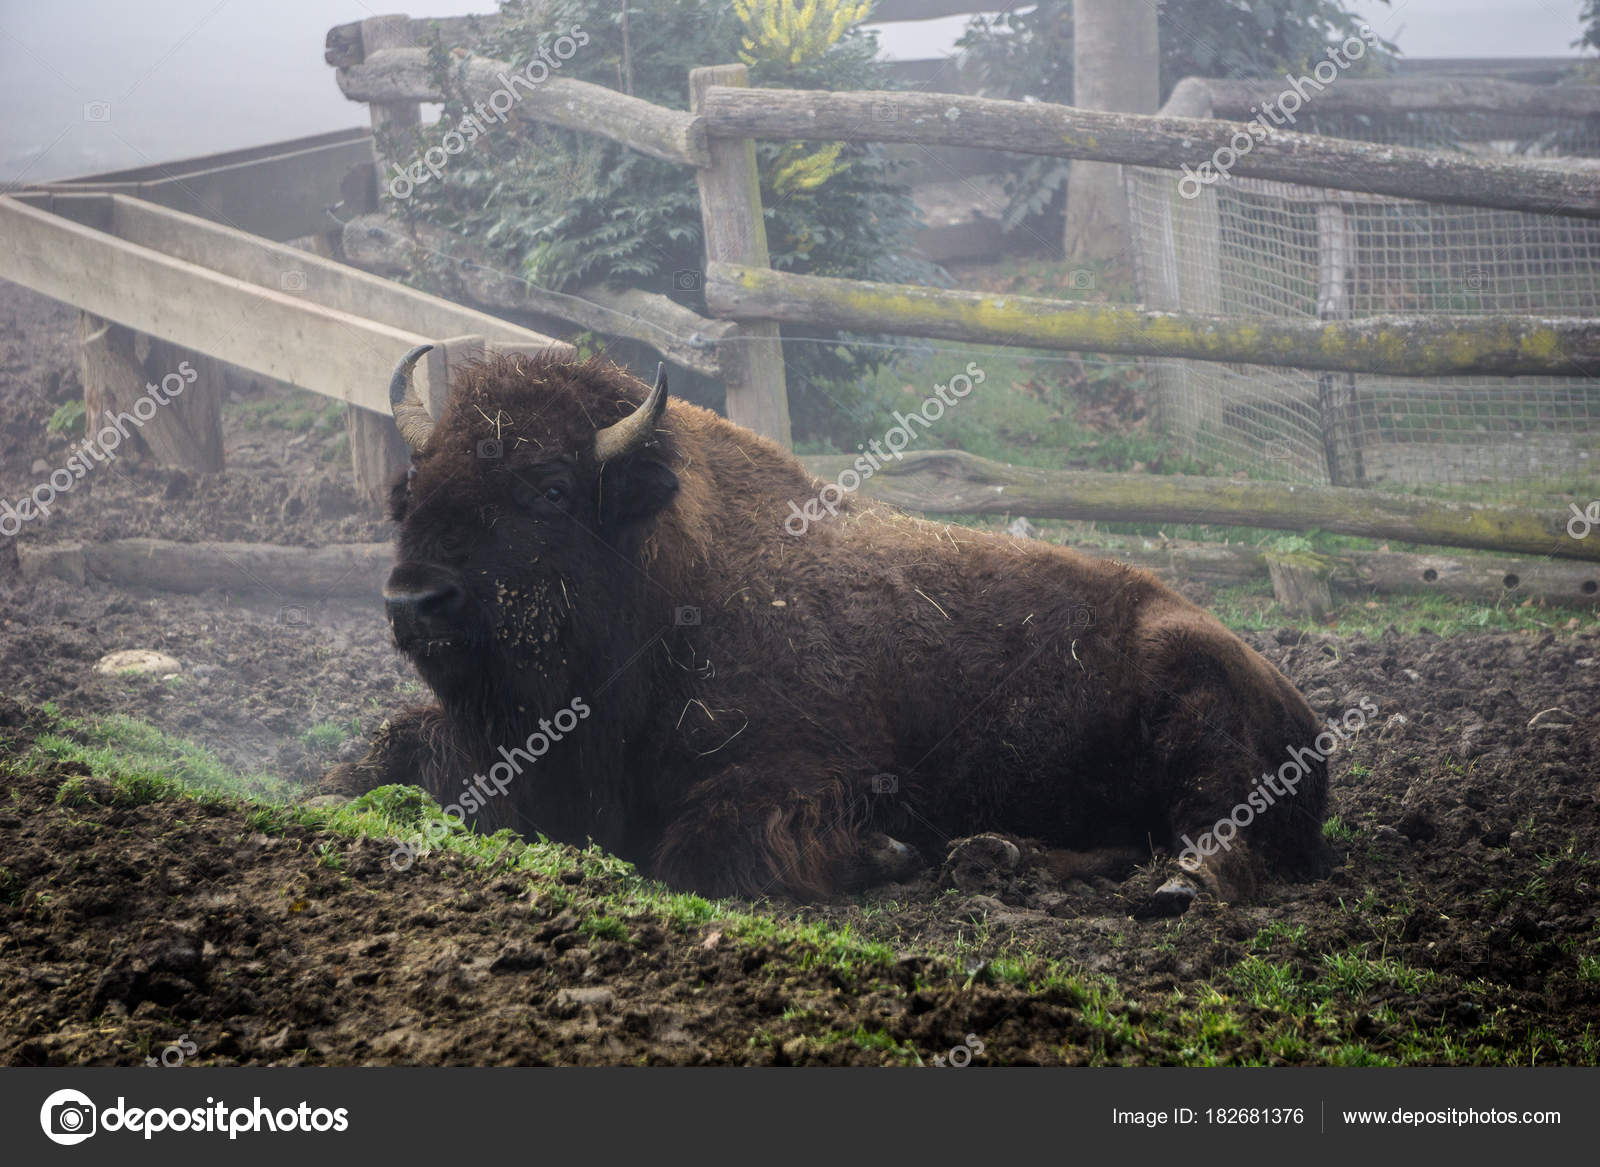 Bison Resting On A Cold And Foggy Morning At The Herberstein Zoo